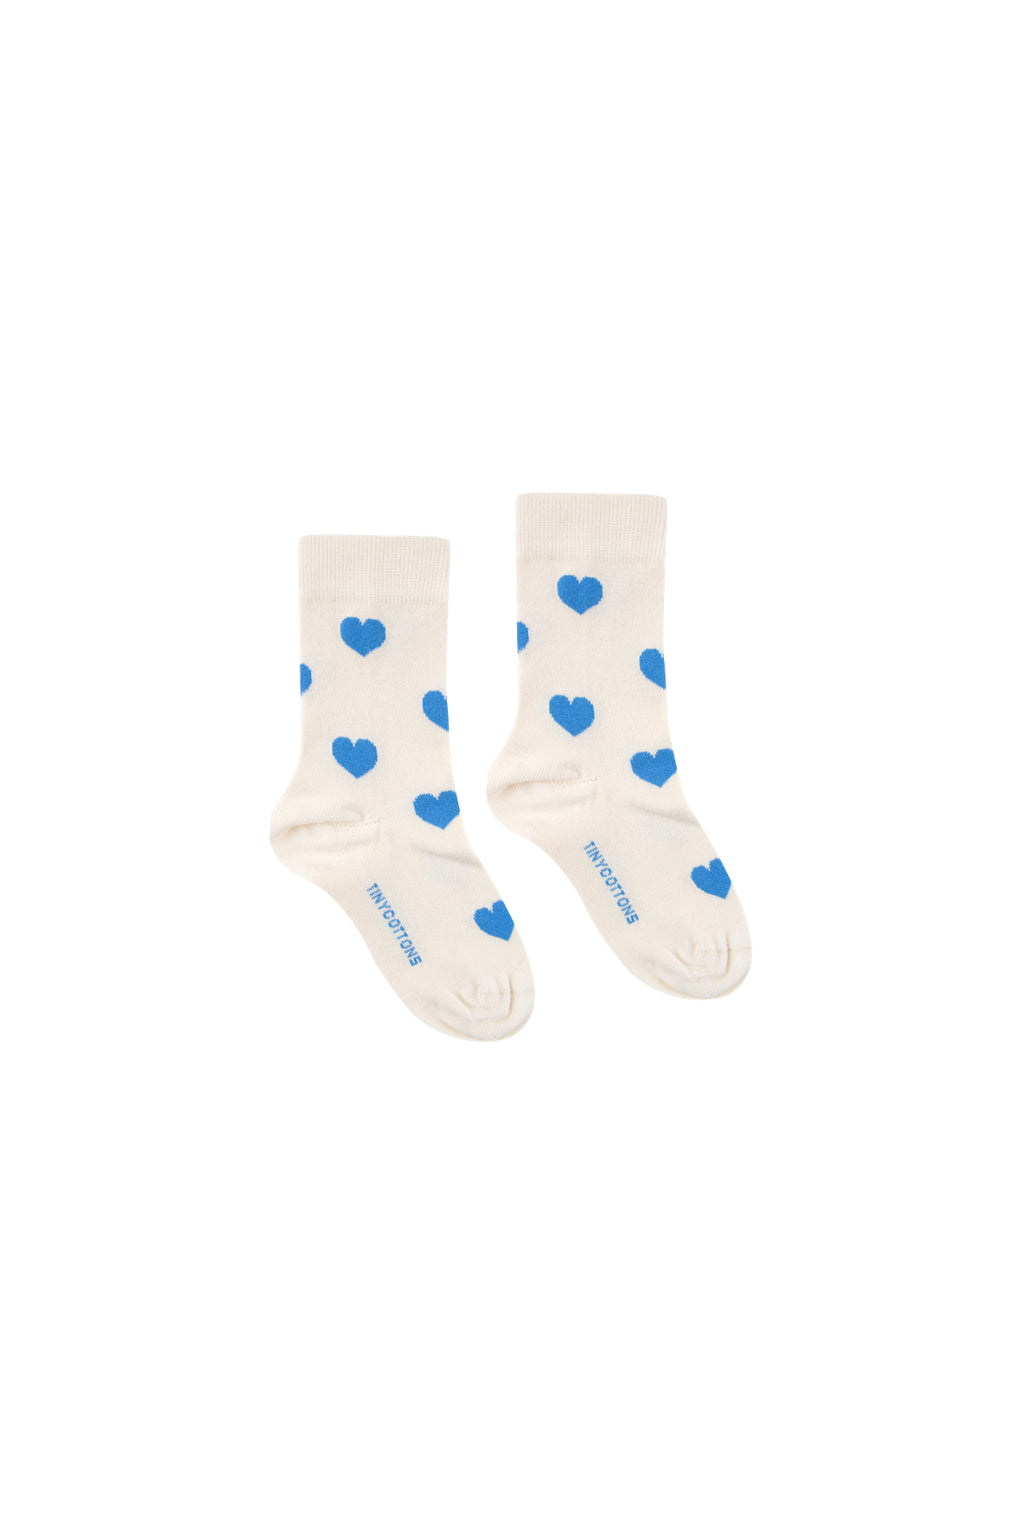 Tiny Cottons Hearts Medium Socks - Light Cream/Cerulean Blue